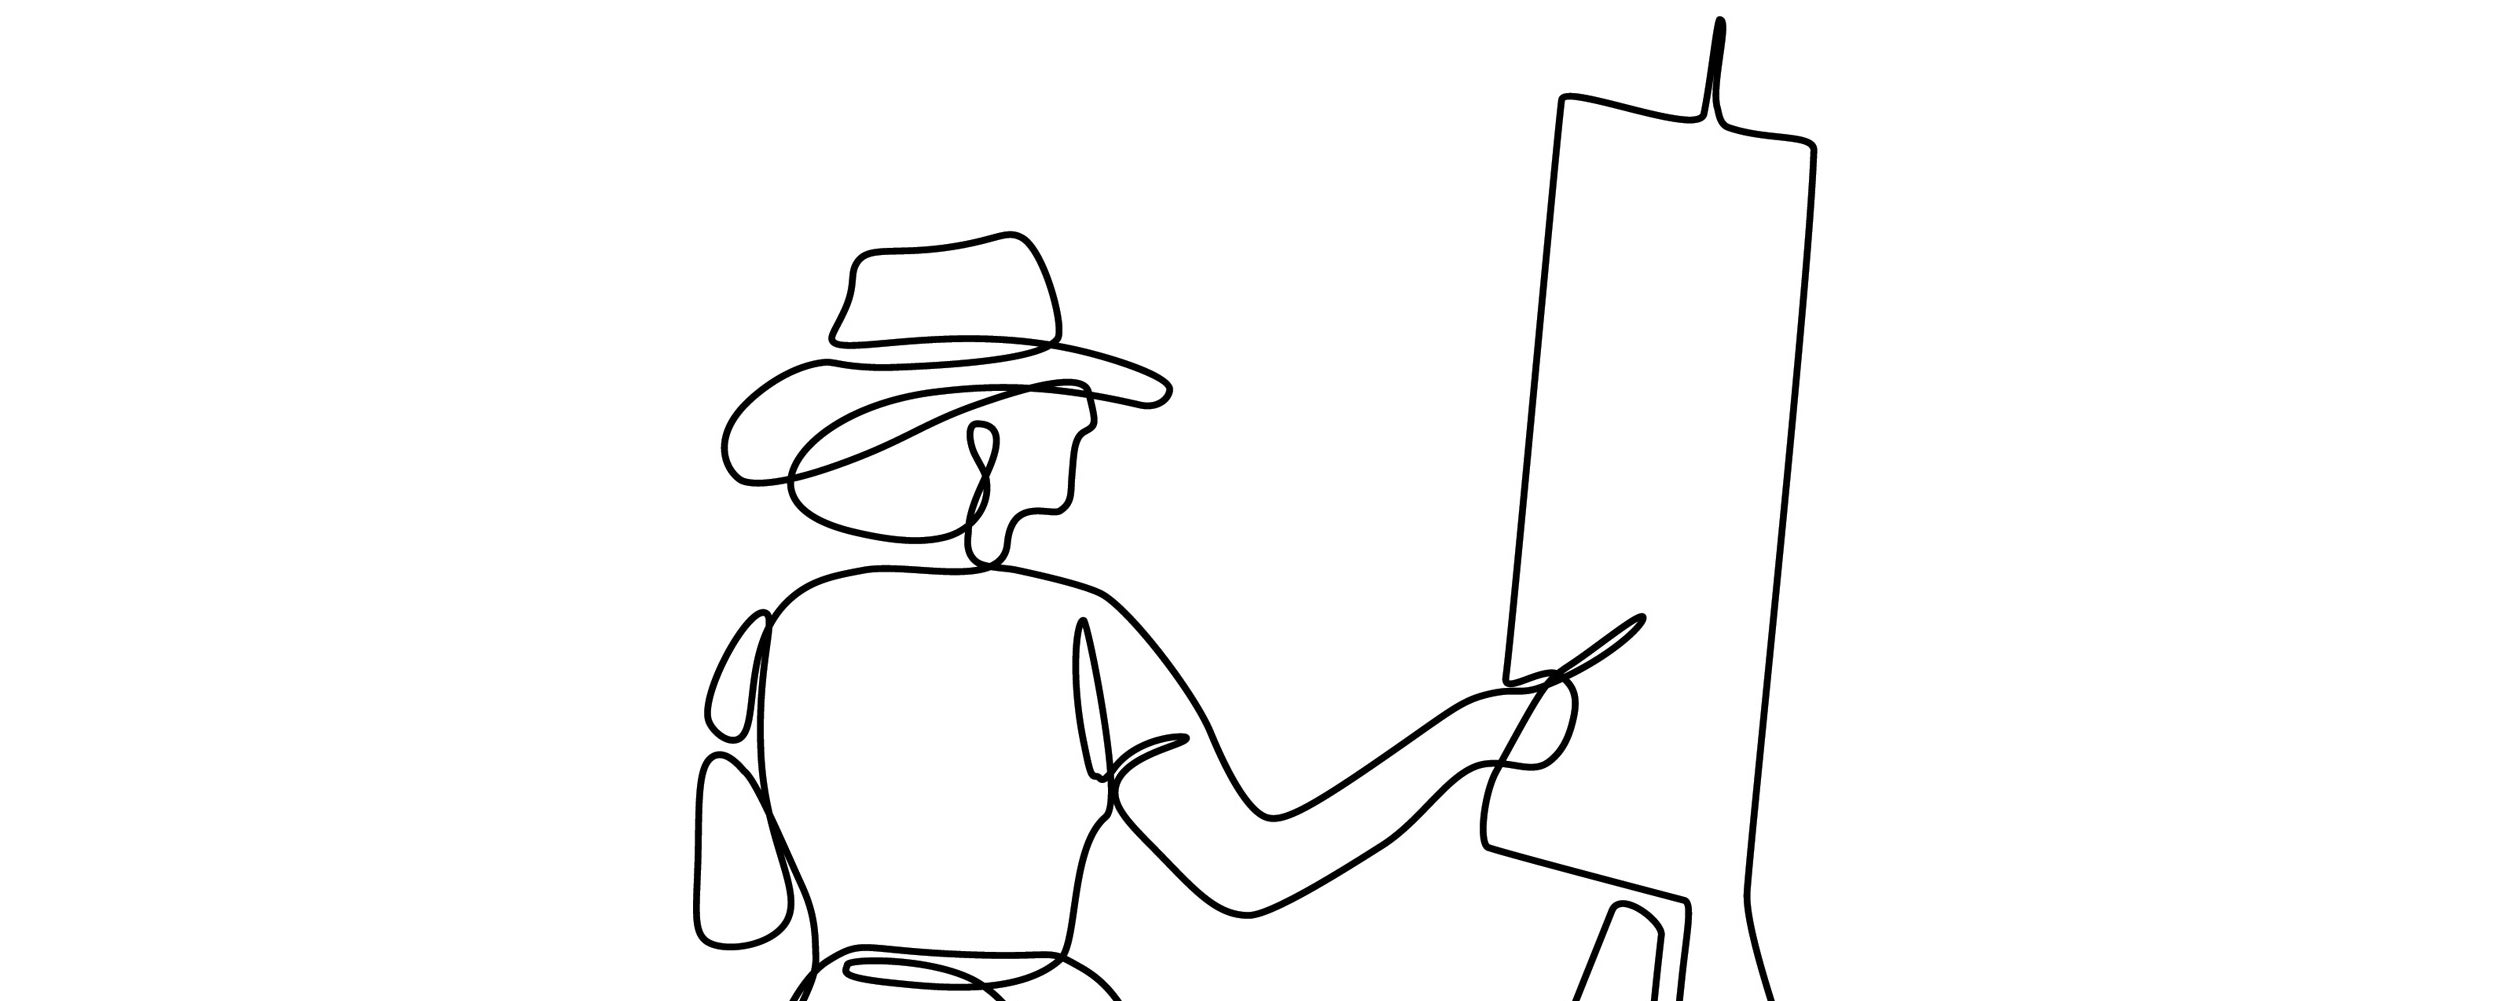 Sketch of a painter.